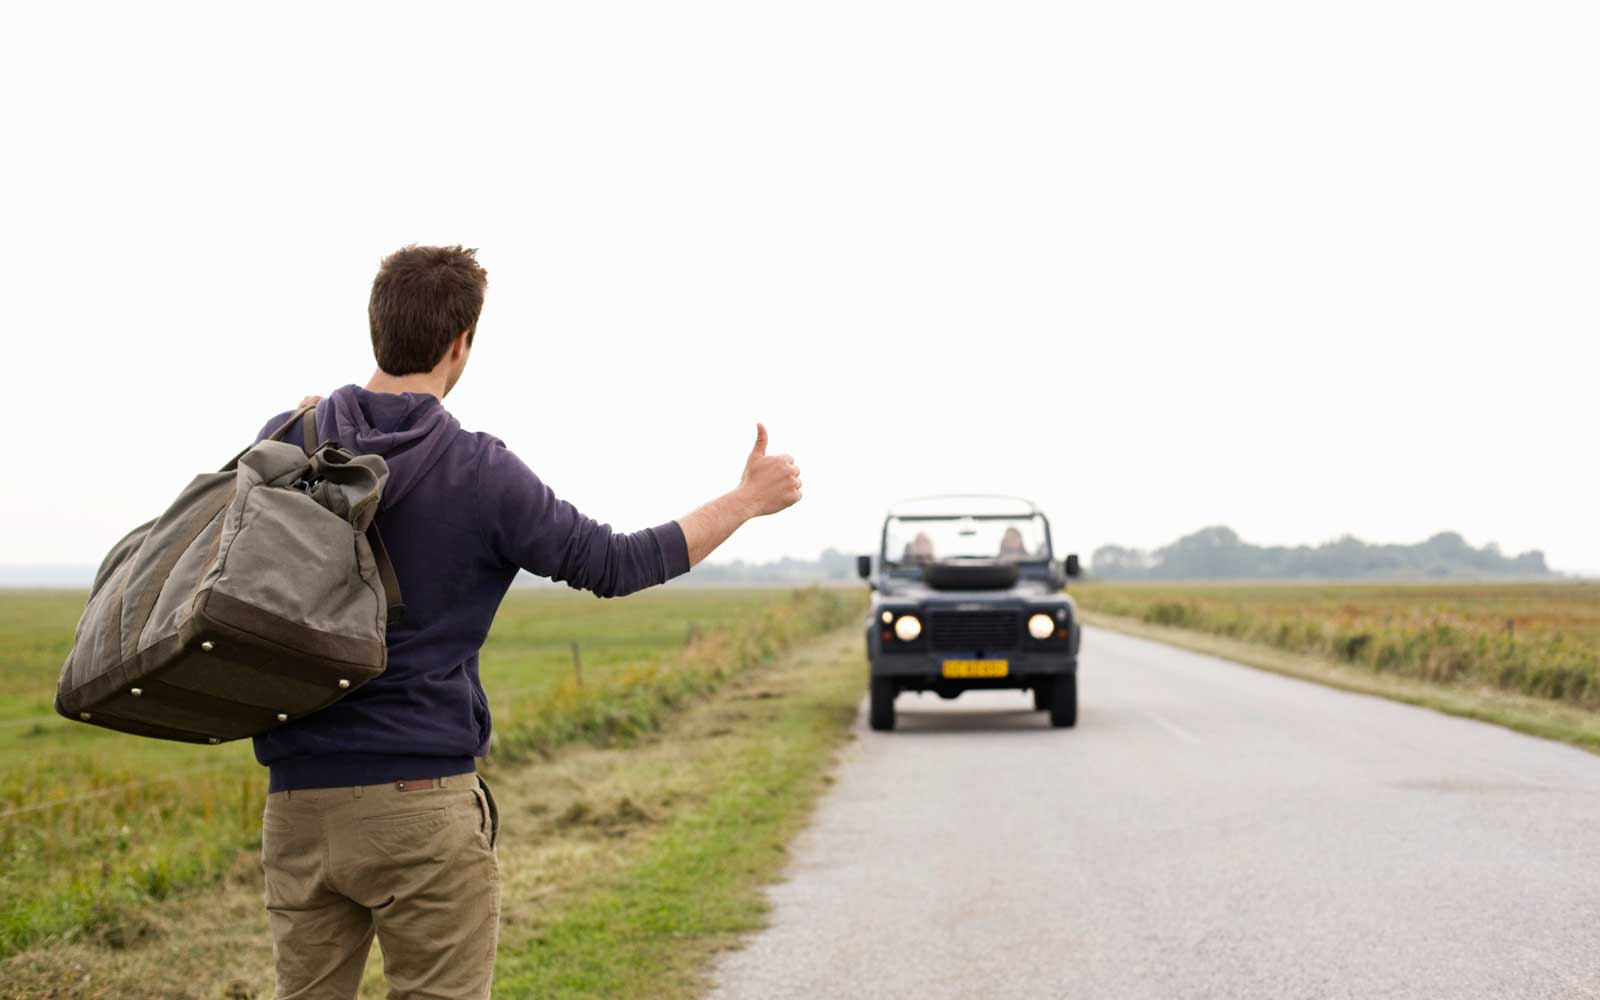 This 24-year-old Is Hitchhiking Across America and Live-streaming the Whole Trip